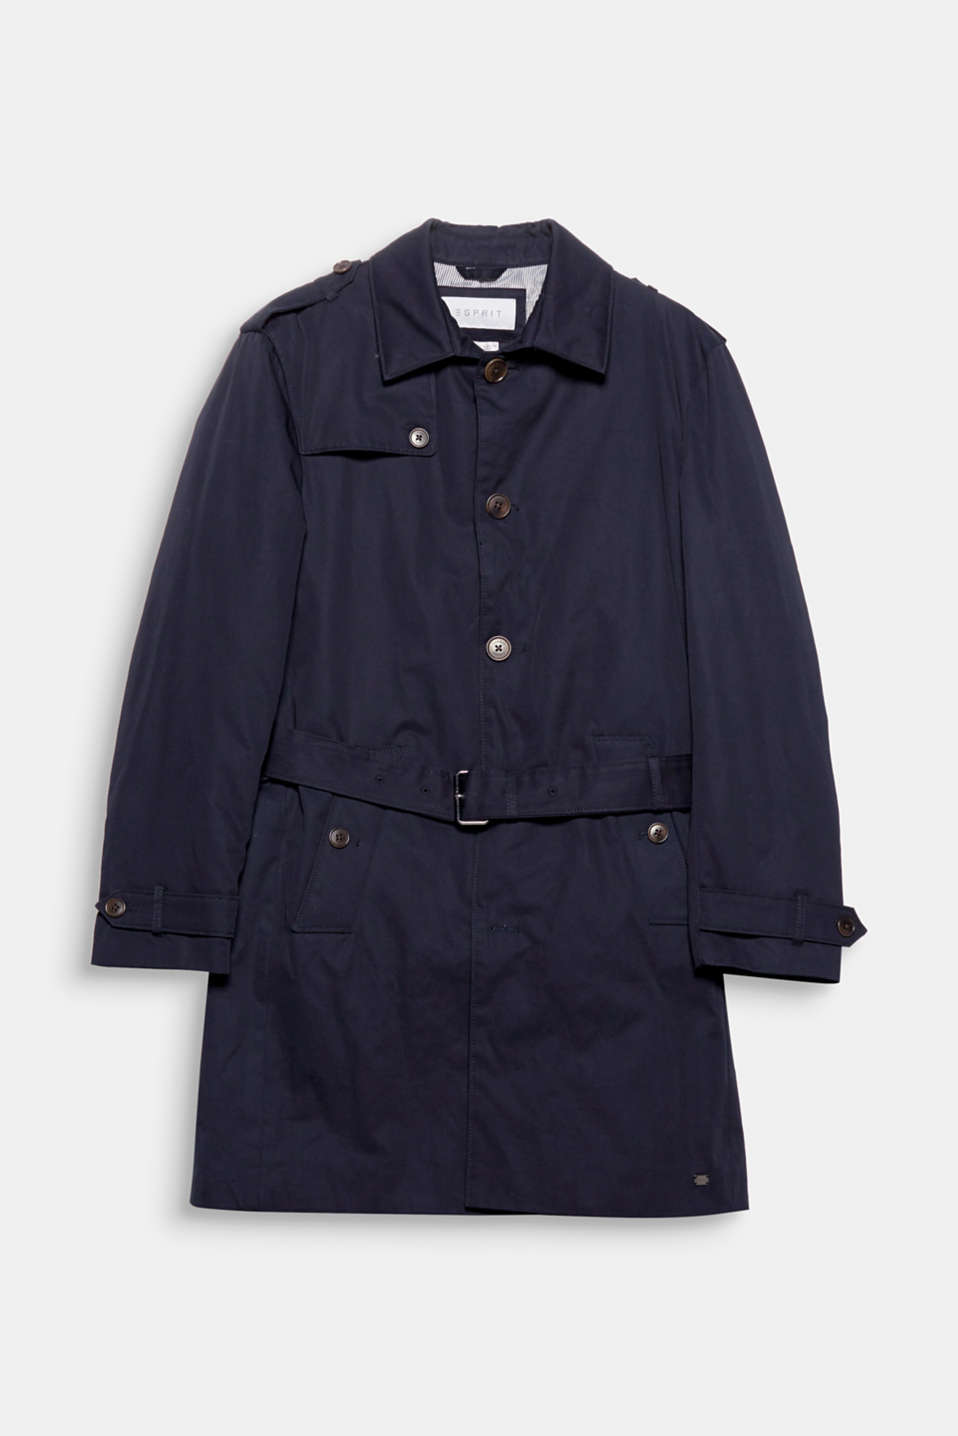 A classic that no wardrobe should be without: the trench coat This model features warm Thinsulate padding.